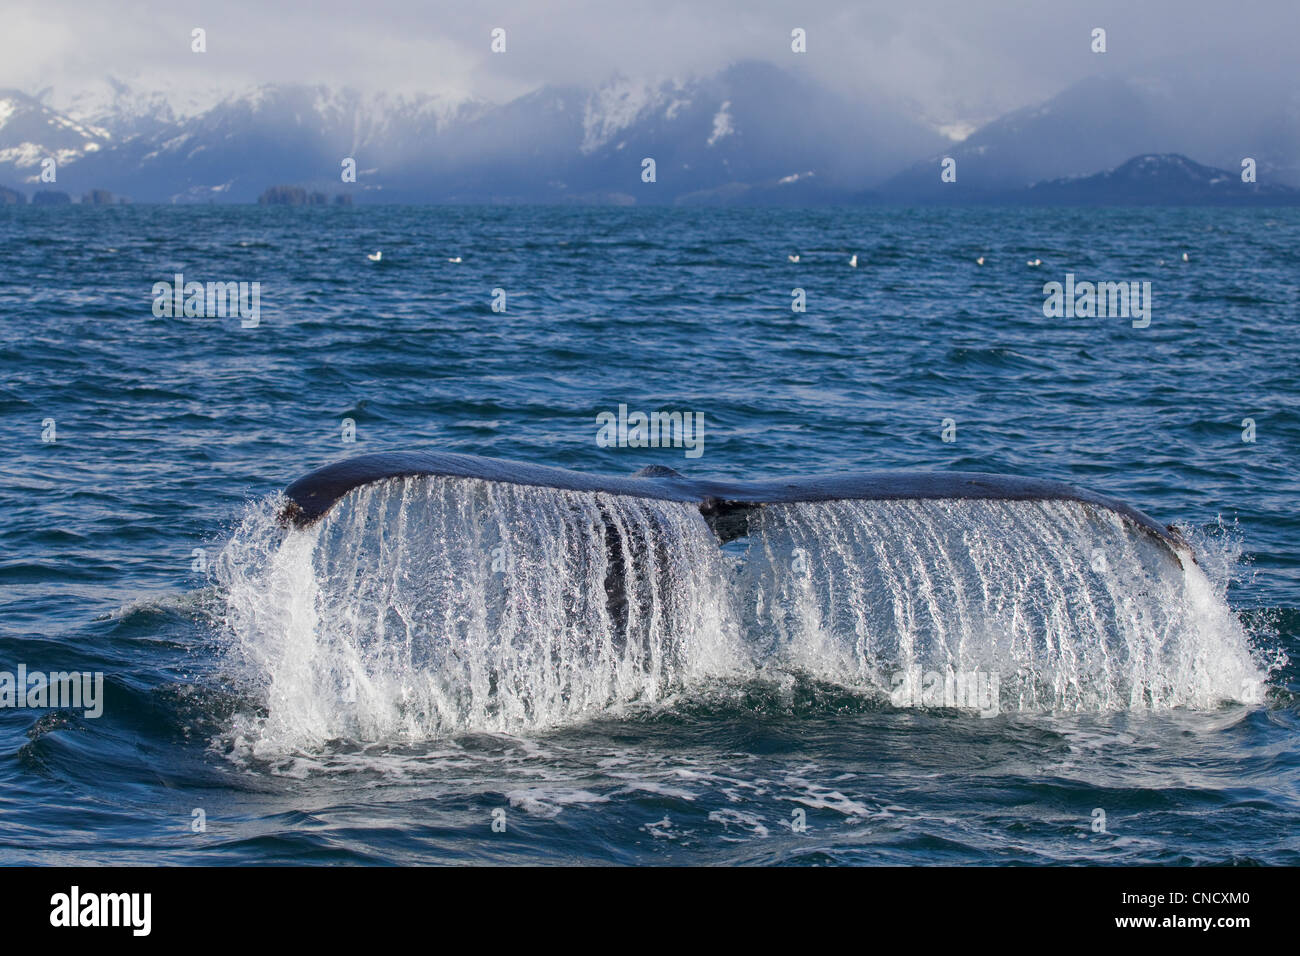 Humpback whale fluking with snowcappped Chugach Mountains in background, Prince William Sound, Alaska - Stock Image